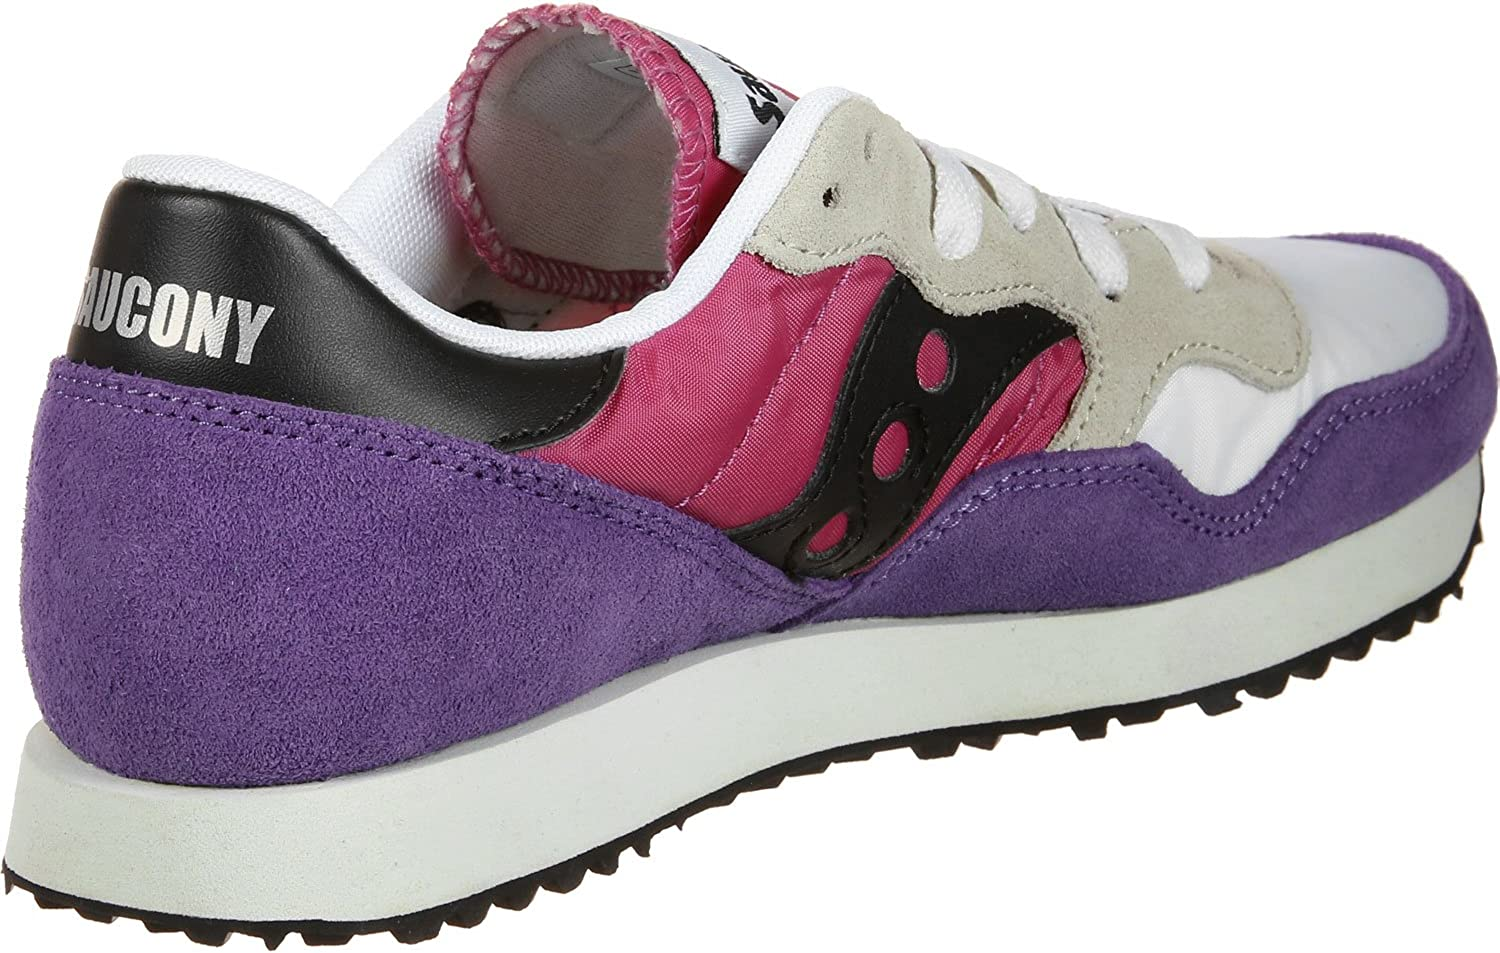 Saucony - DXN Trainer - S6036926 - Farbe  Wei - Gre  40.5 EU